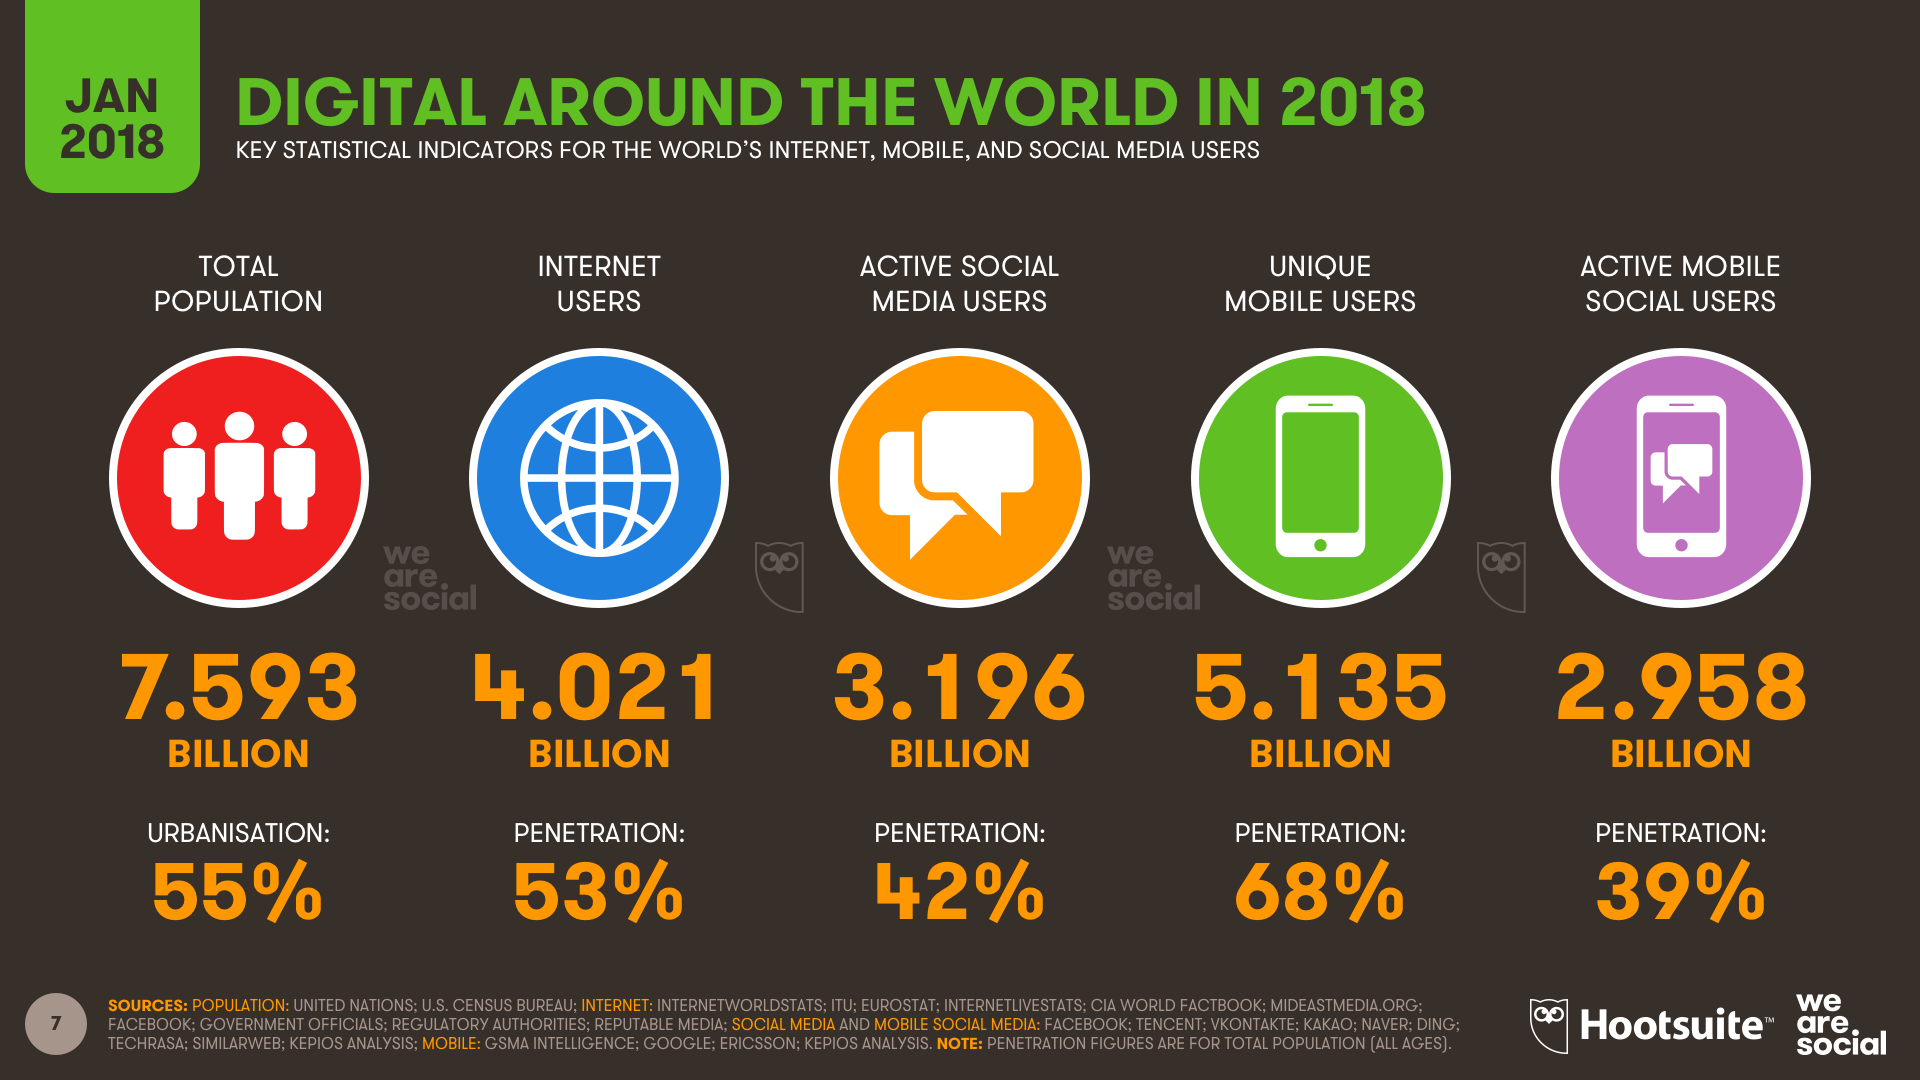 Digital around the world 2018